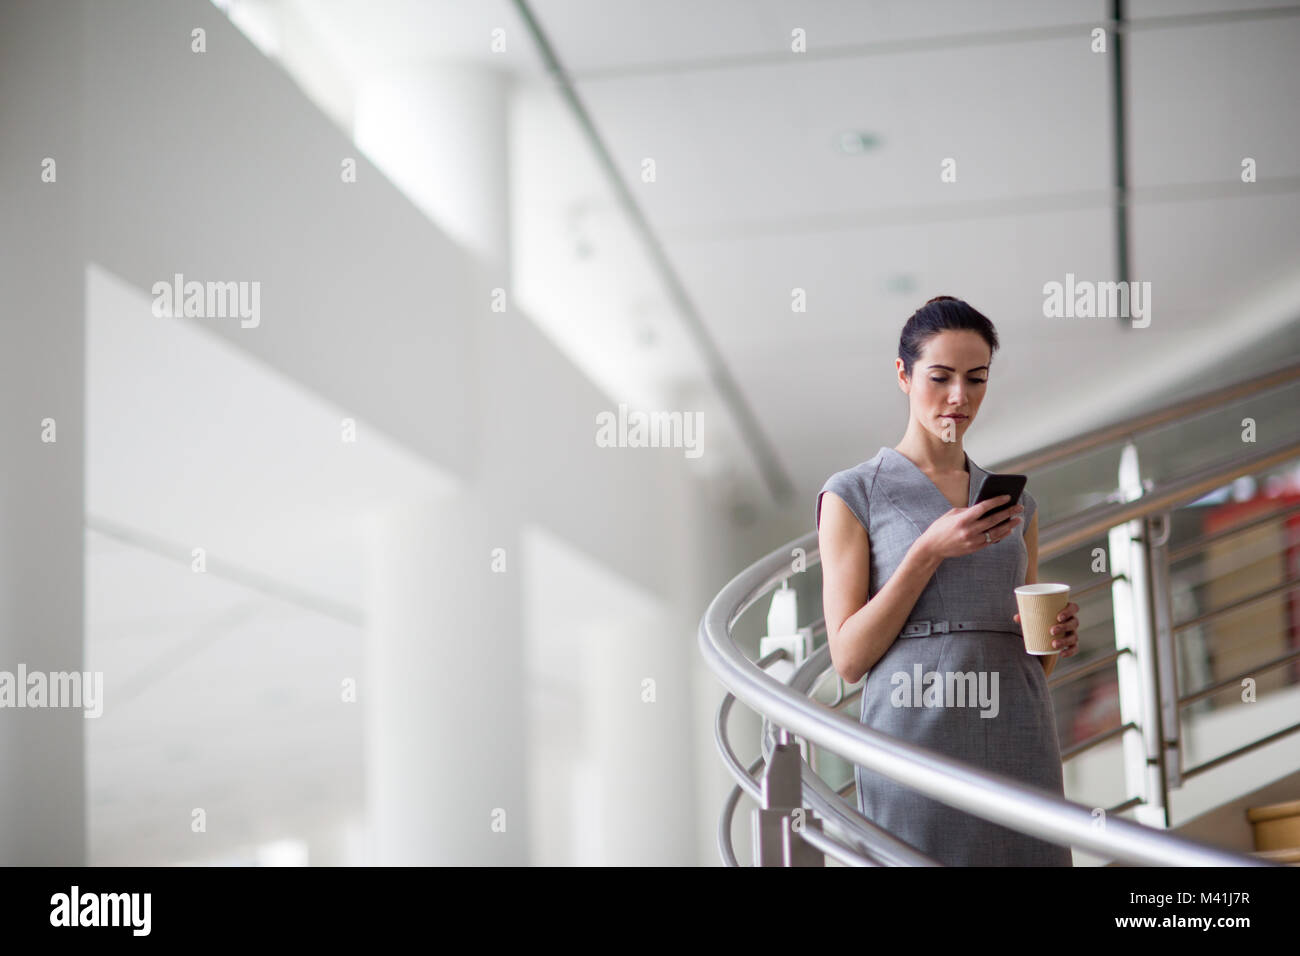 Businesswoman using smartphone app sur sa façon de travailler Photo Stock